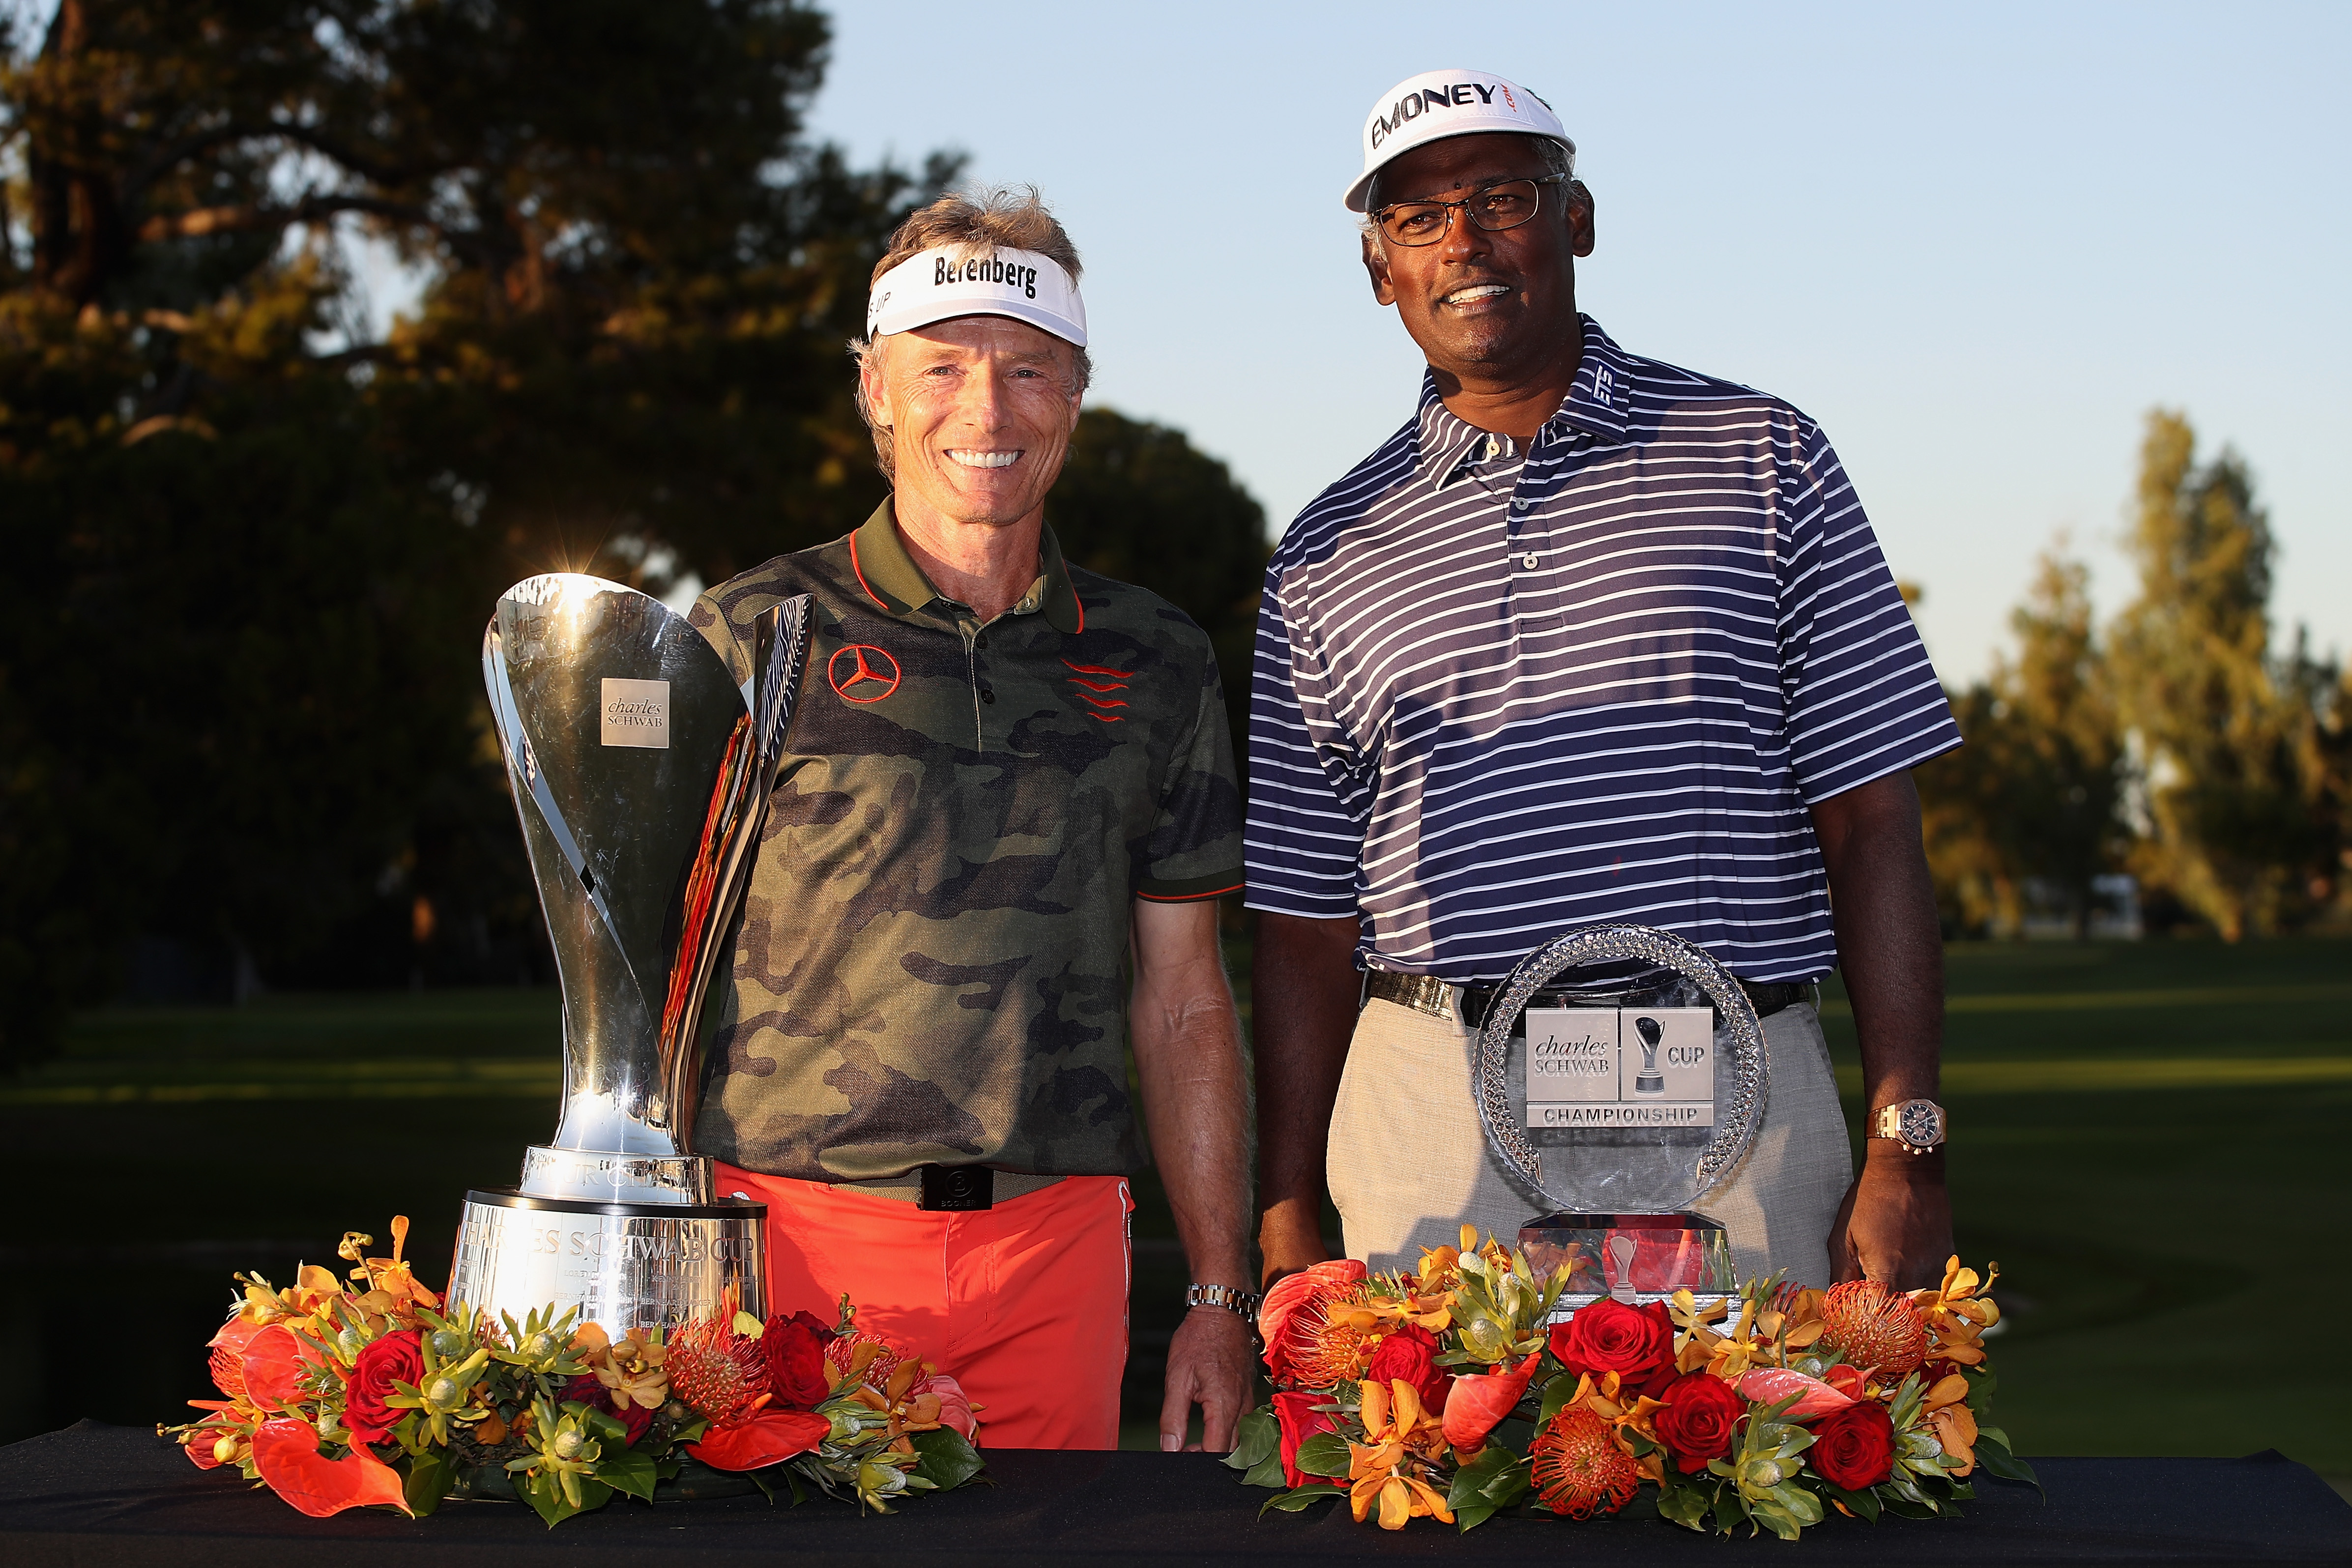 PHOENIX, AZ - NOVEMBER 11: Bernhard Langer of Germany winner of the Charles Schwab Cup and Vijay Singh of Fiji Islands winner of the Charles Schwab Cup Championship pose together at Phoenix Country Club on November 11, 2018 in Phoenix, Arizona. (Photo by Christian Petersen/Getty Images)